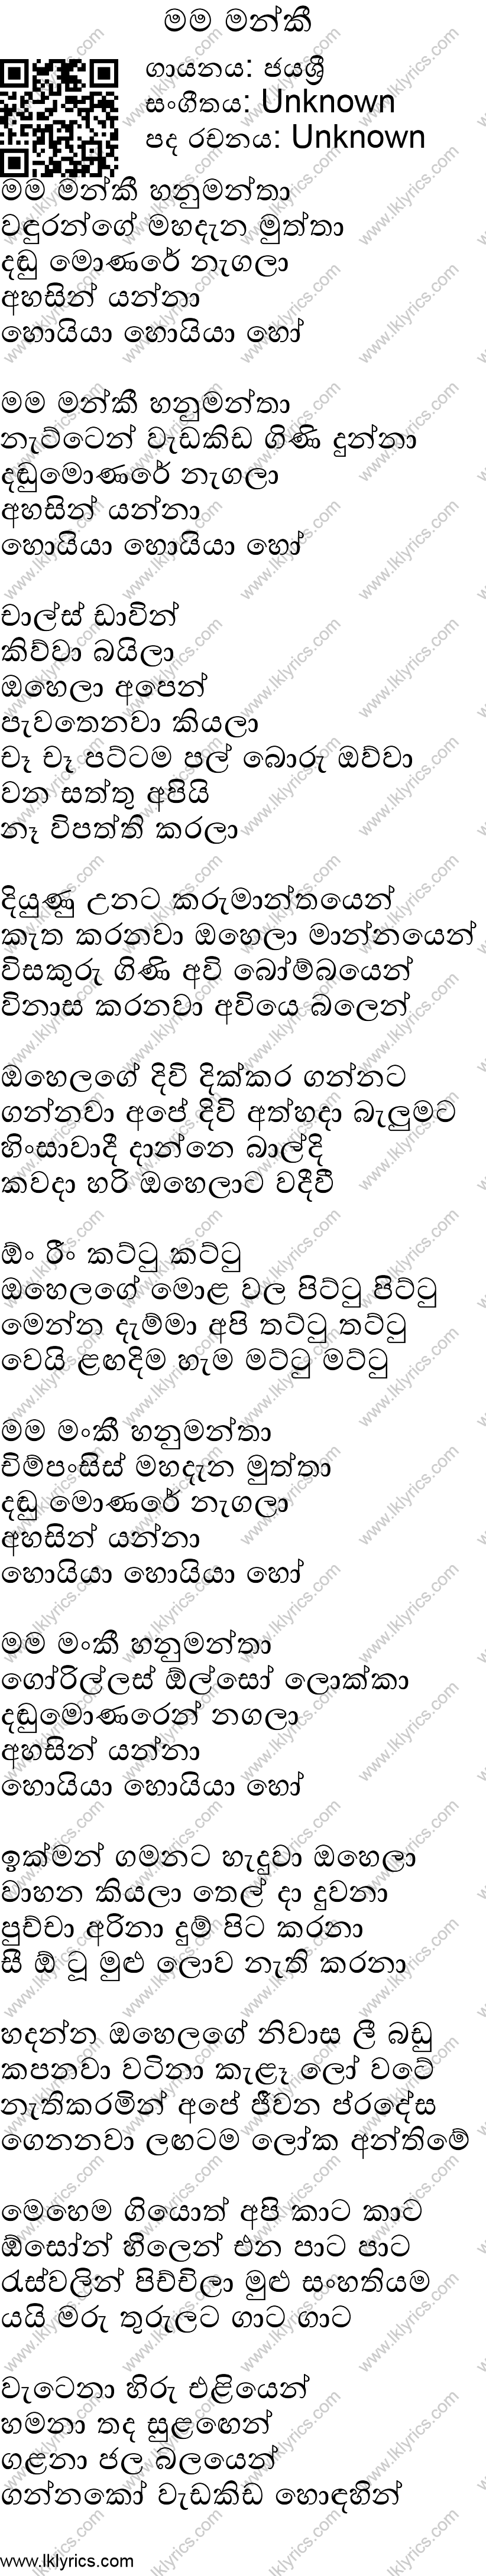 Mama Manki Lyrics - LK Lyrics